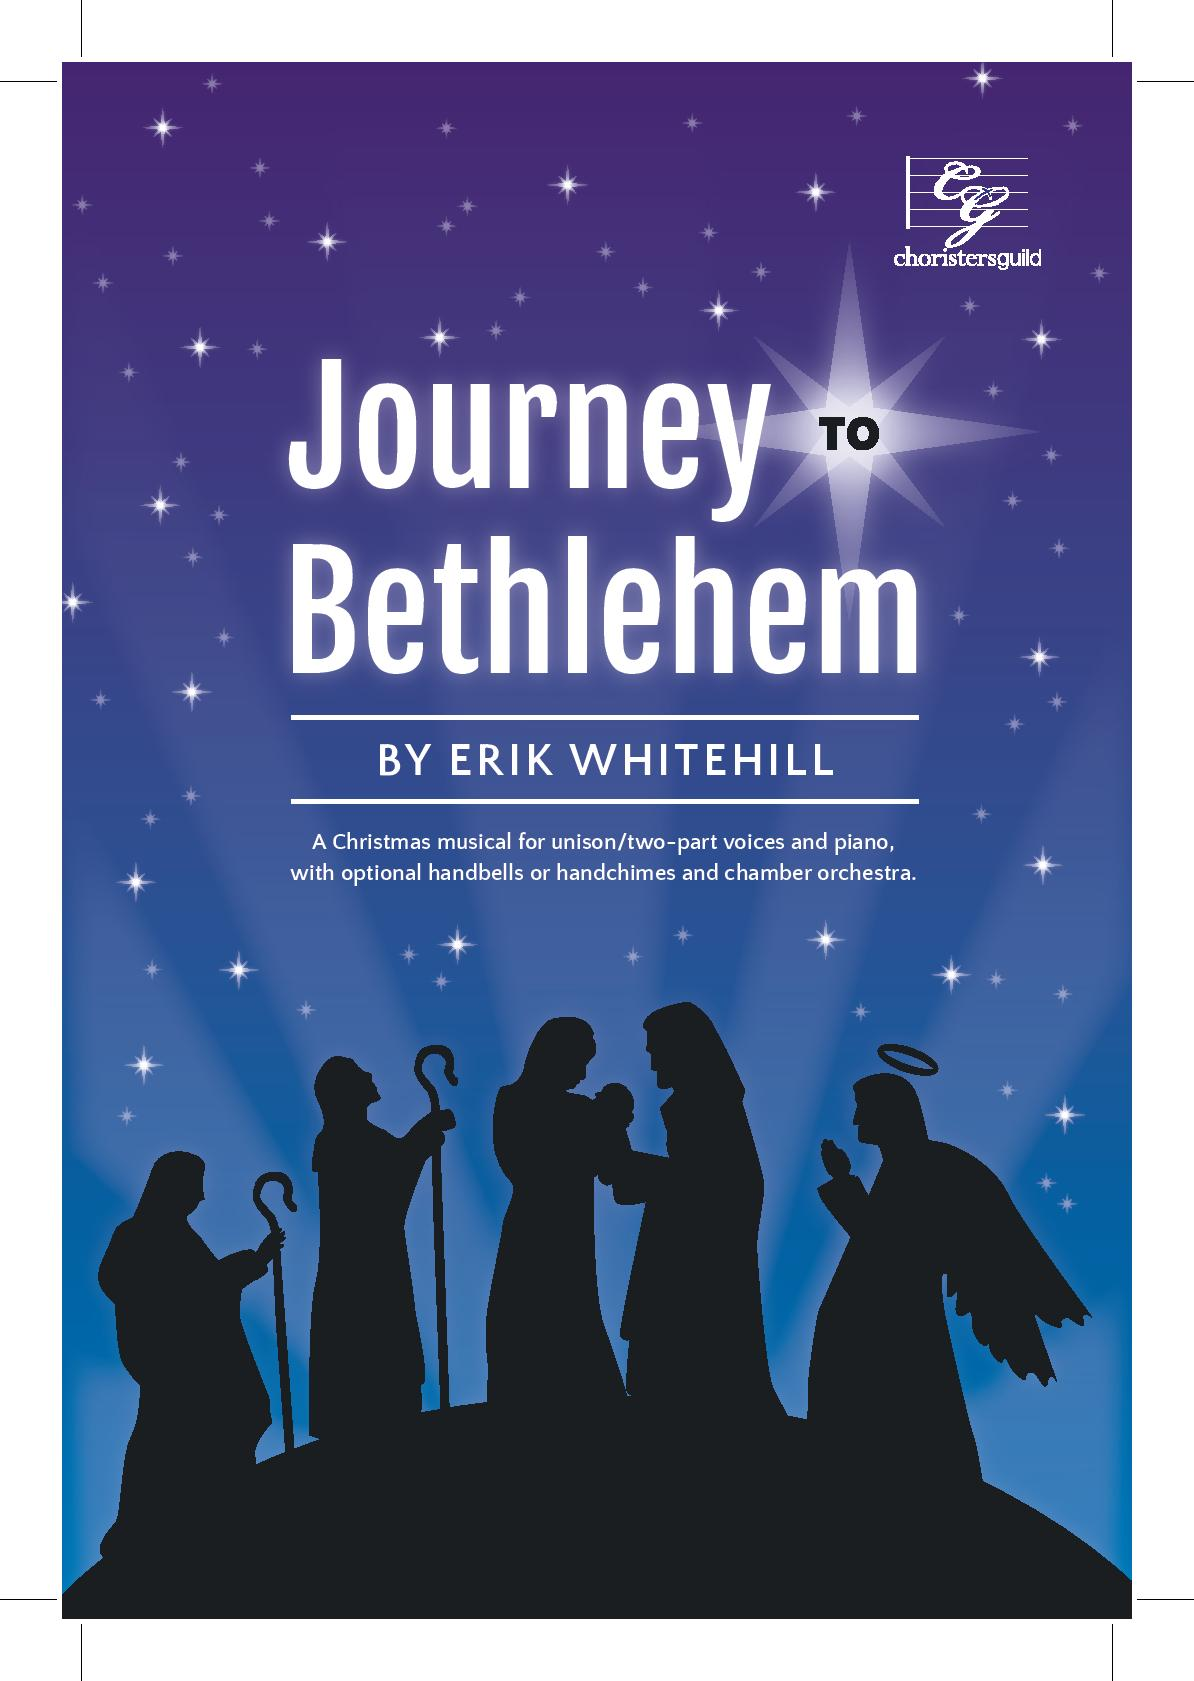 Journey to Bethlehem - Preview Kit